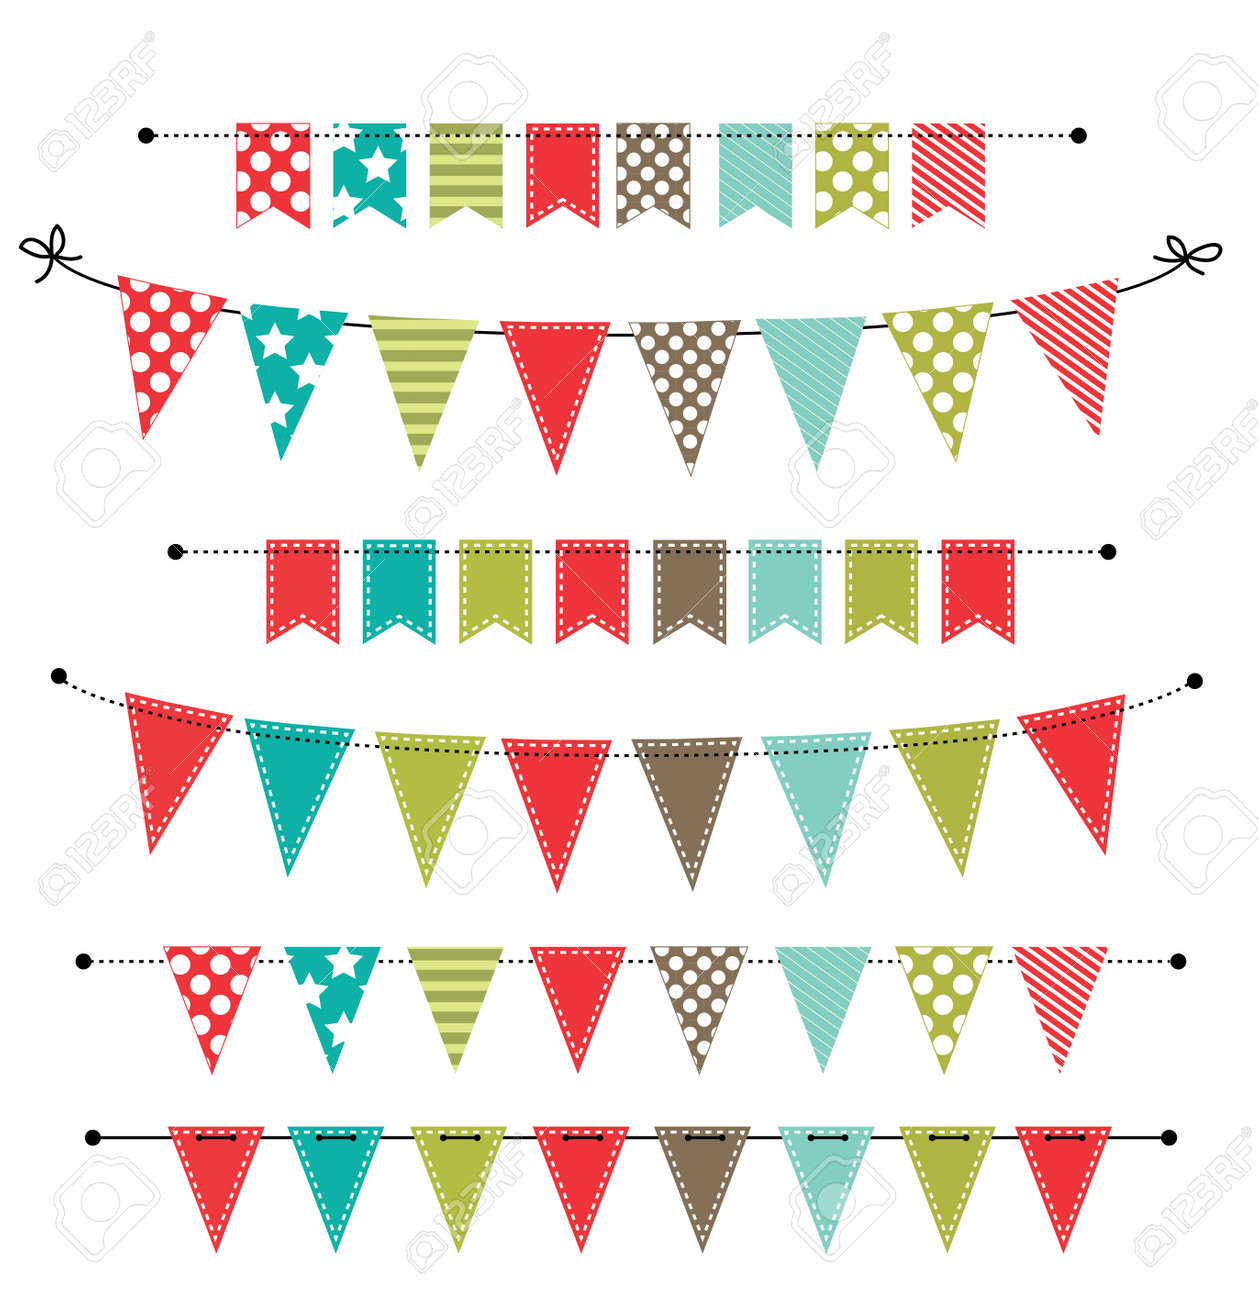 Christmas Banner Bunting Or Flags On Transparent Background Royalty Free Cliparts Vectors And Stock Illustration Image 32360134